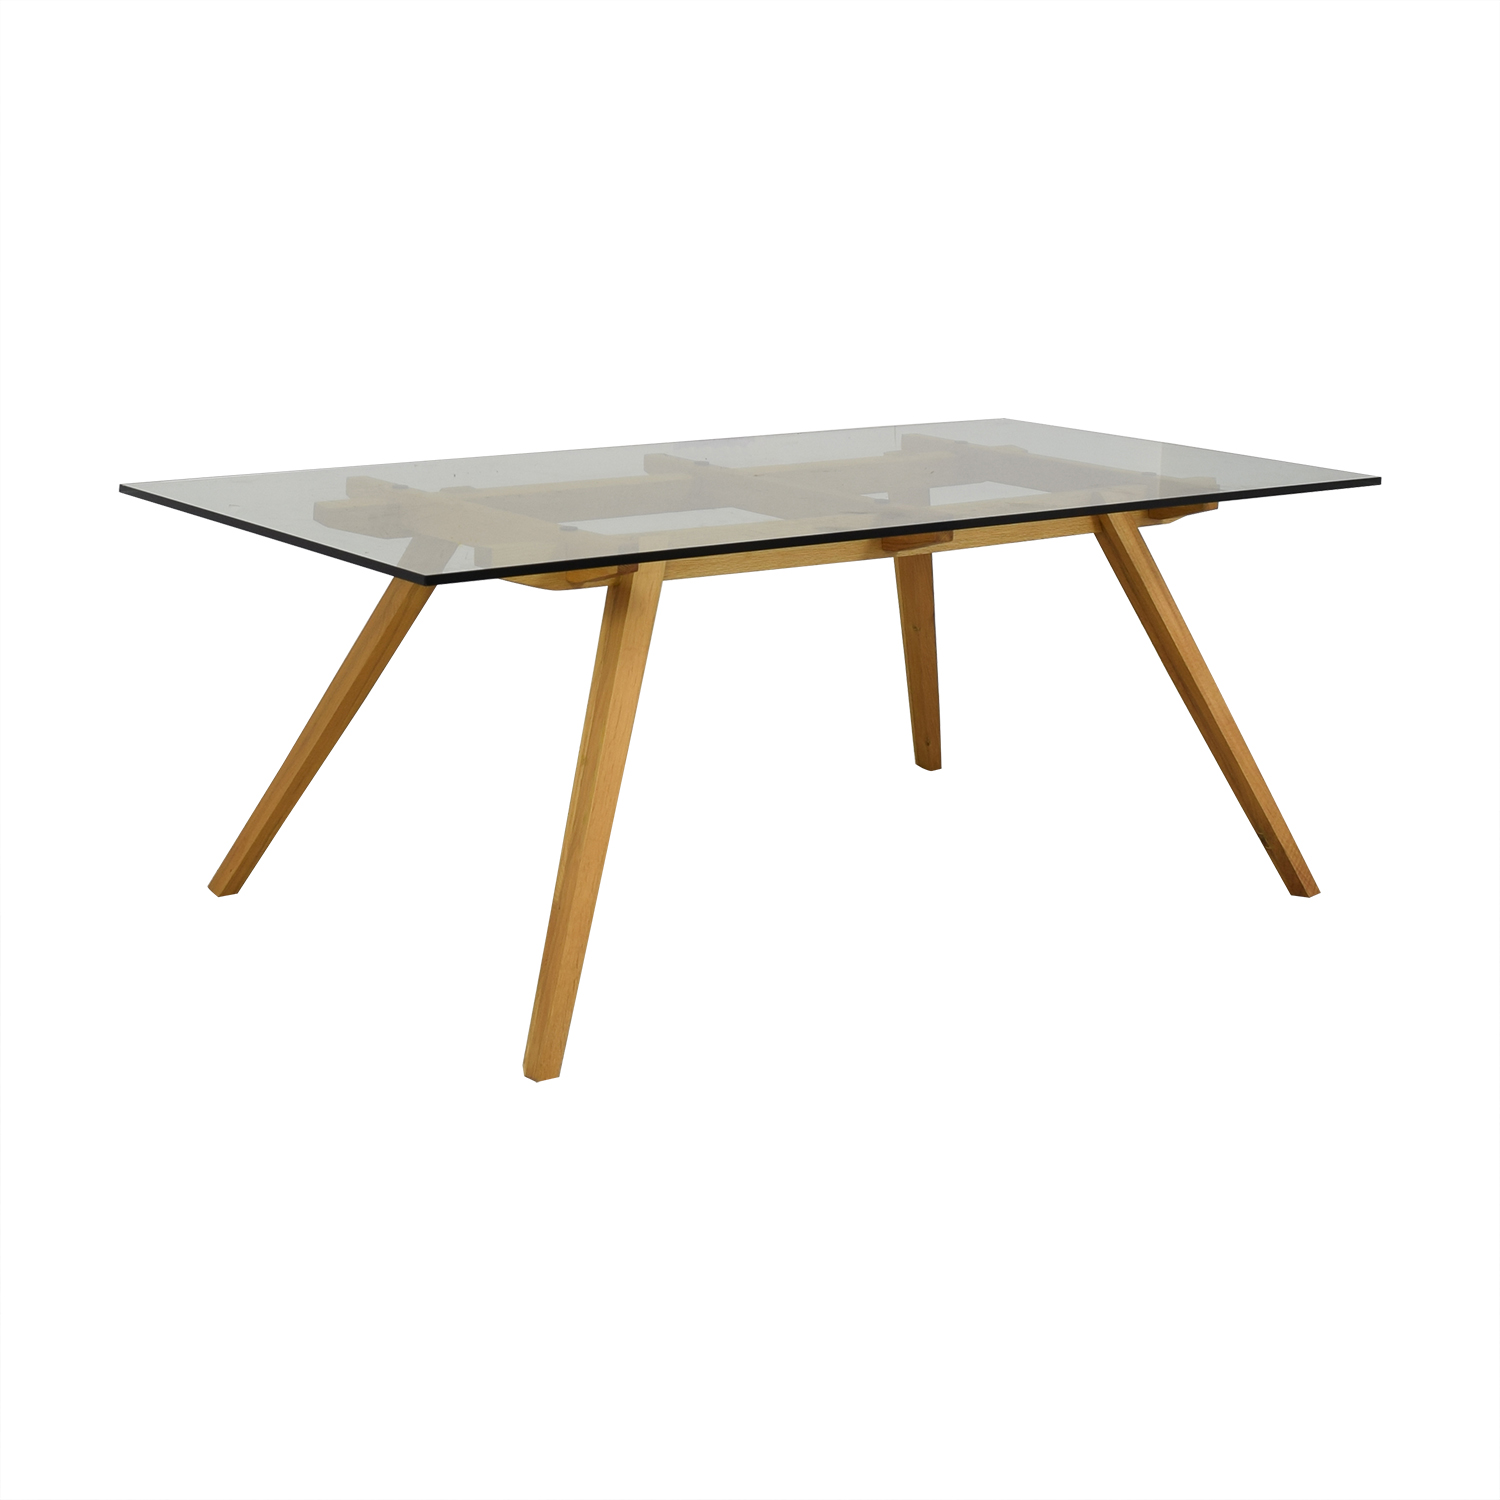 Organic Modernism Organic Modernism Recoleta Glass and Wood Dining Table Dinner Tables